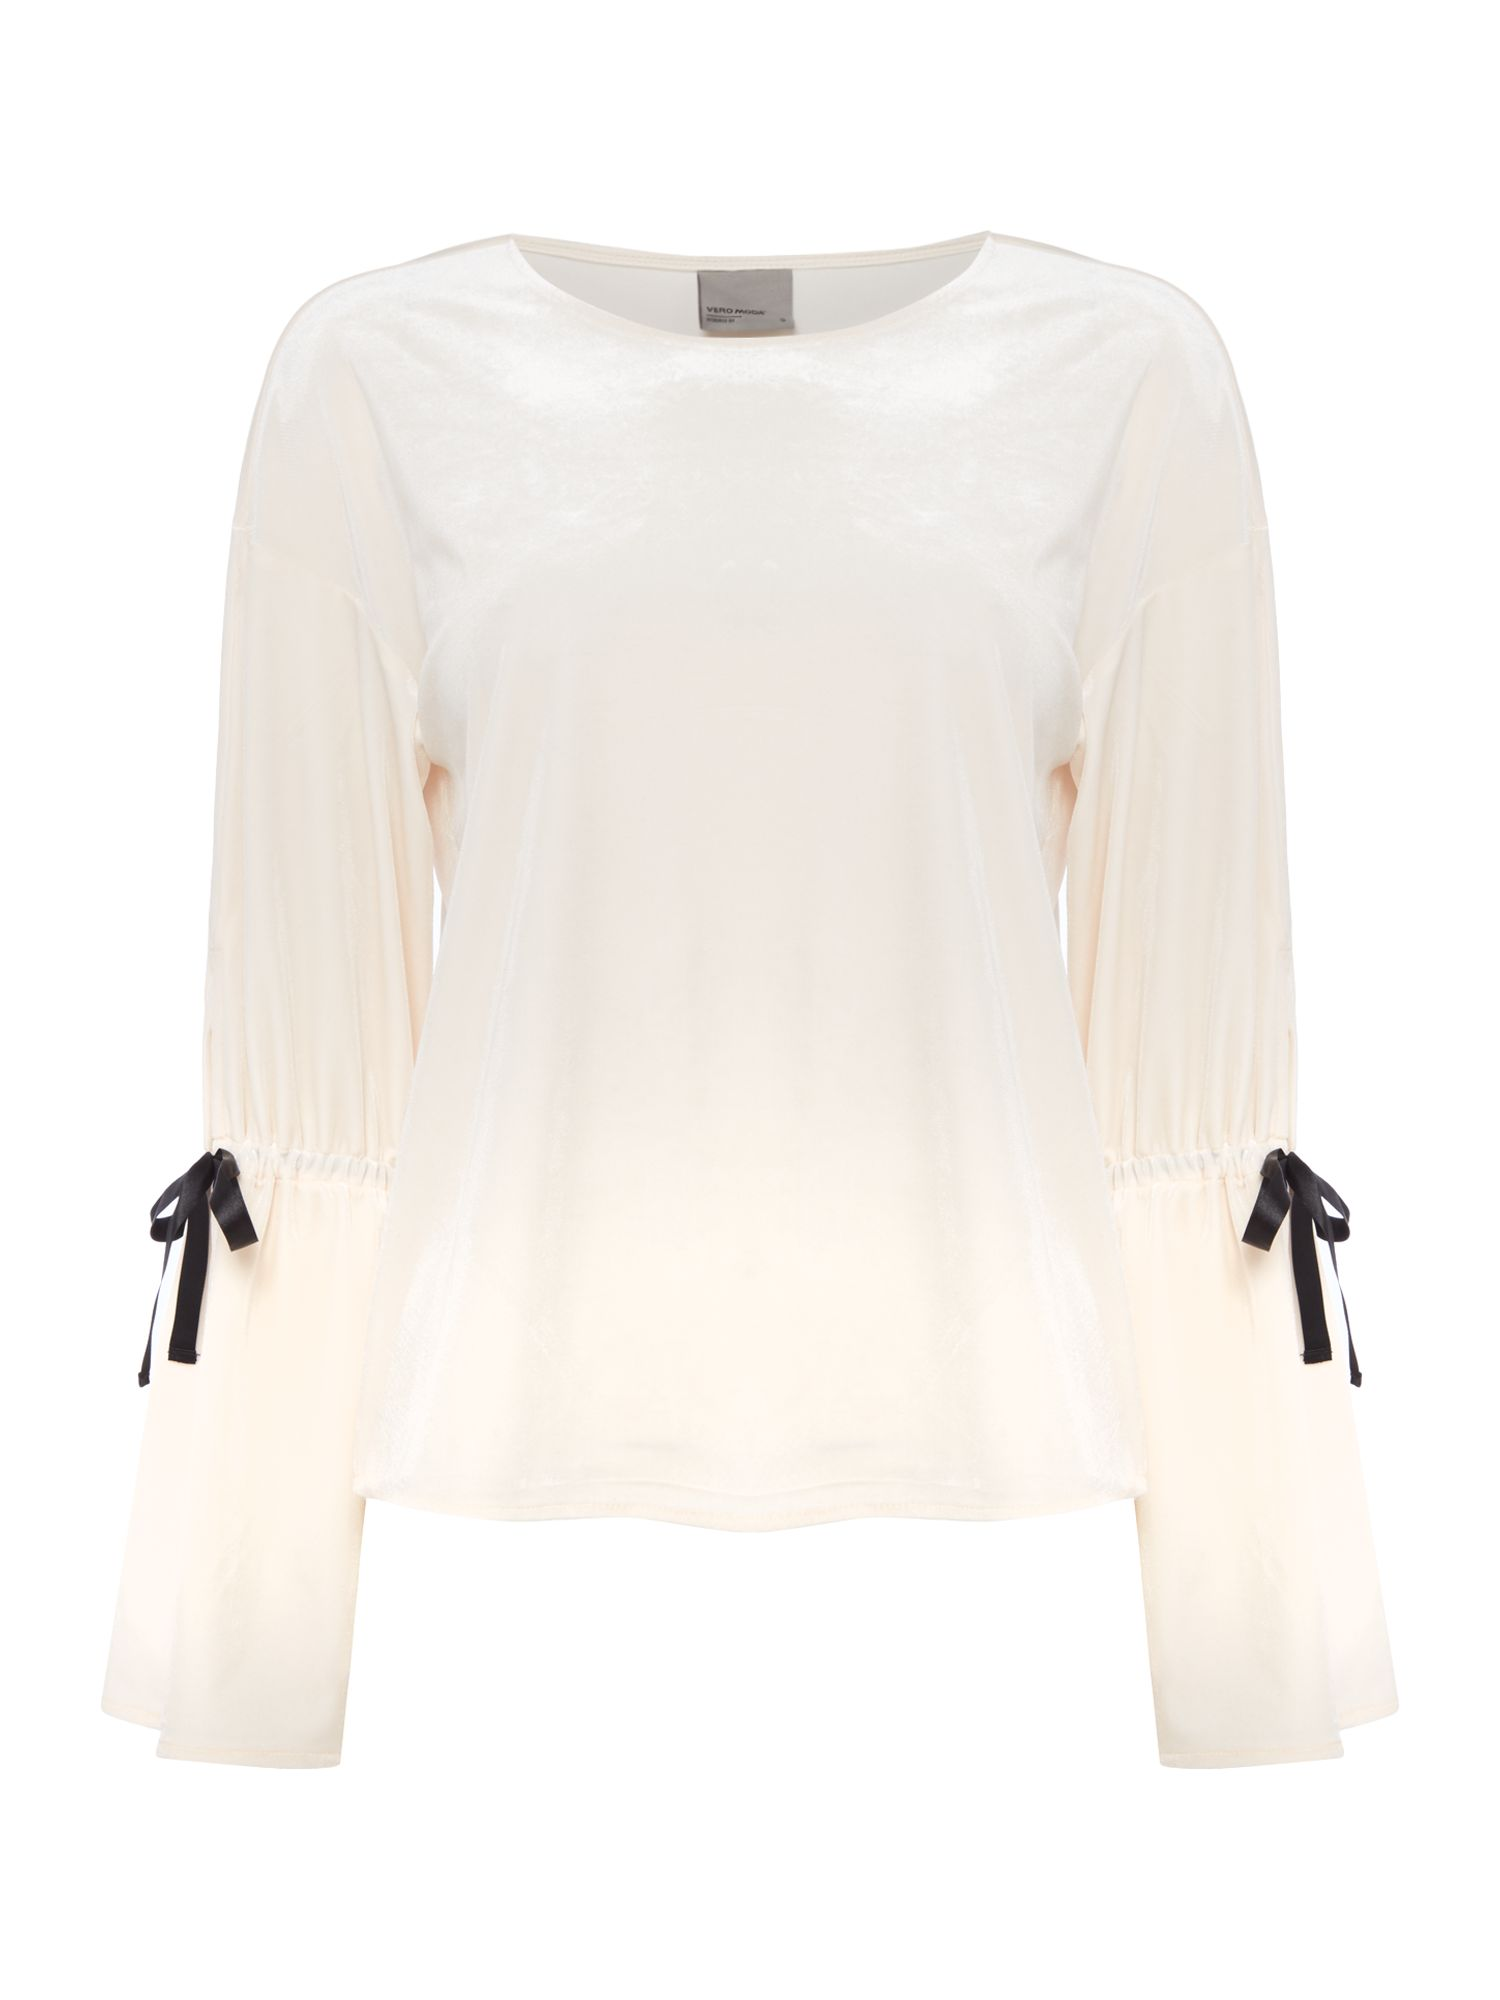 Vero Moda Long sleeves crew neck top with sleeve details, Mauve